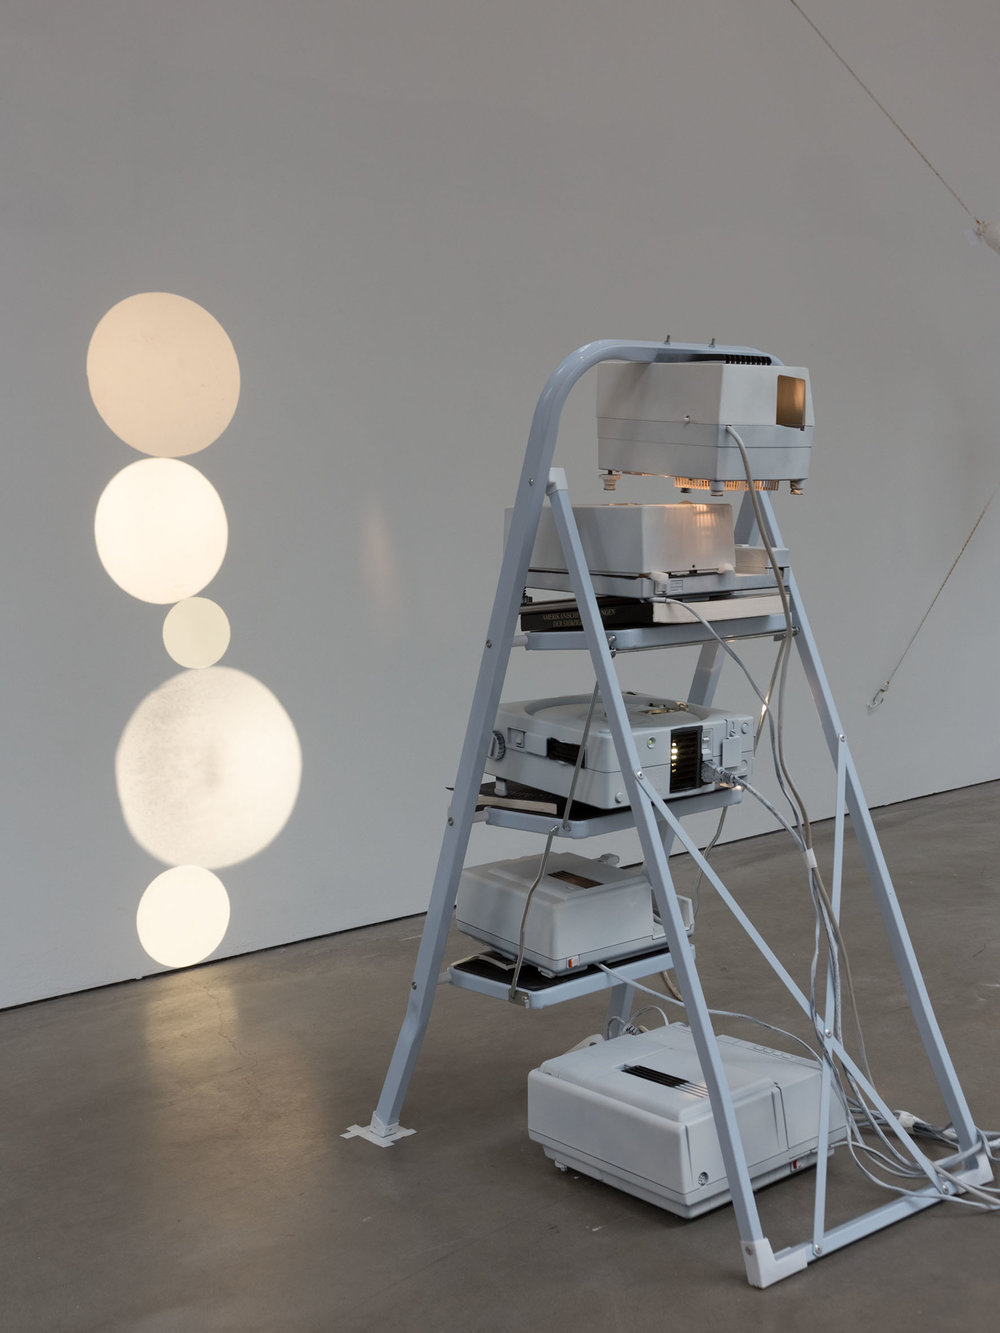 Fünf Monde , 2015  5 slide projectors and household ladder  102 × 45 × 75 cm   Unique